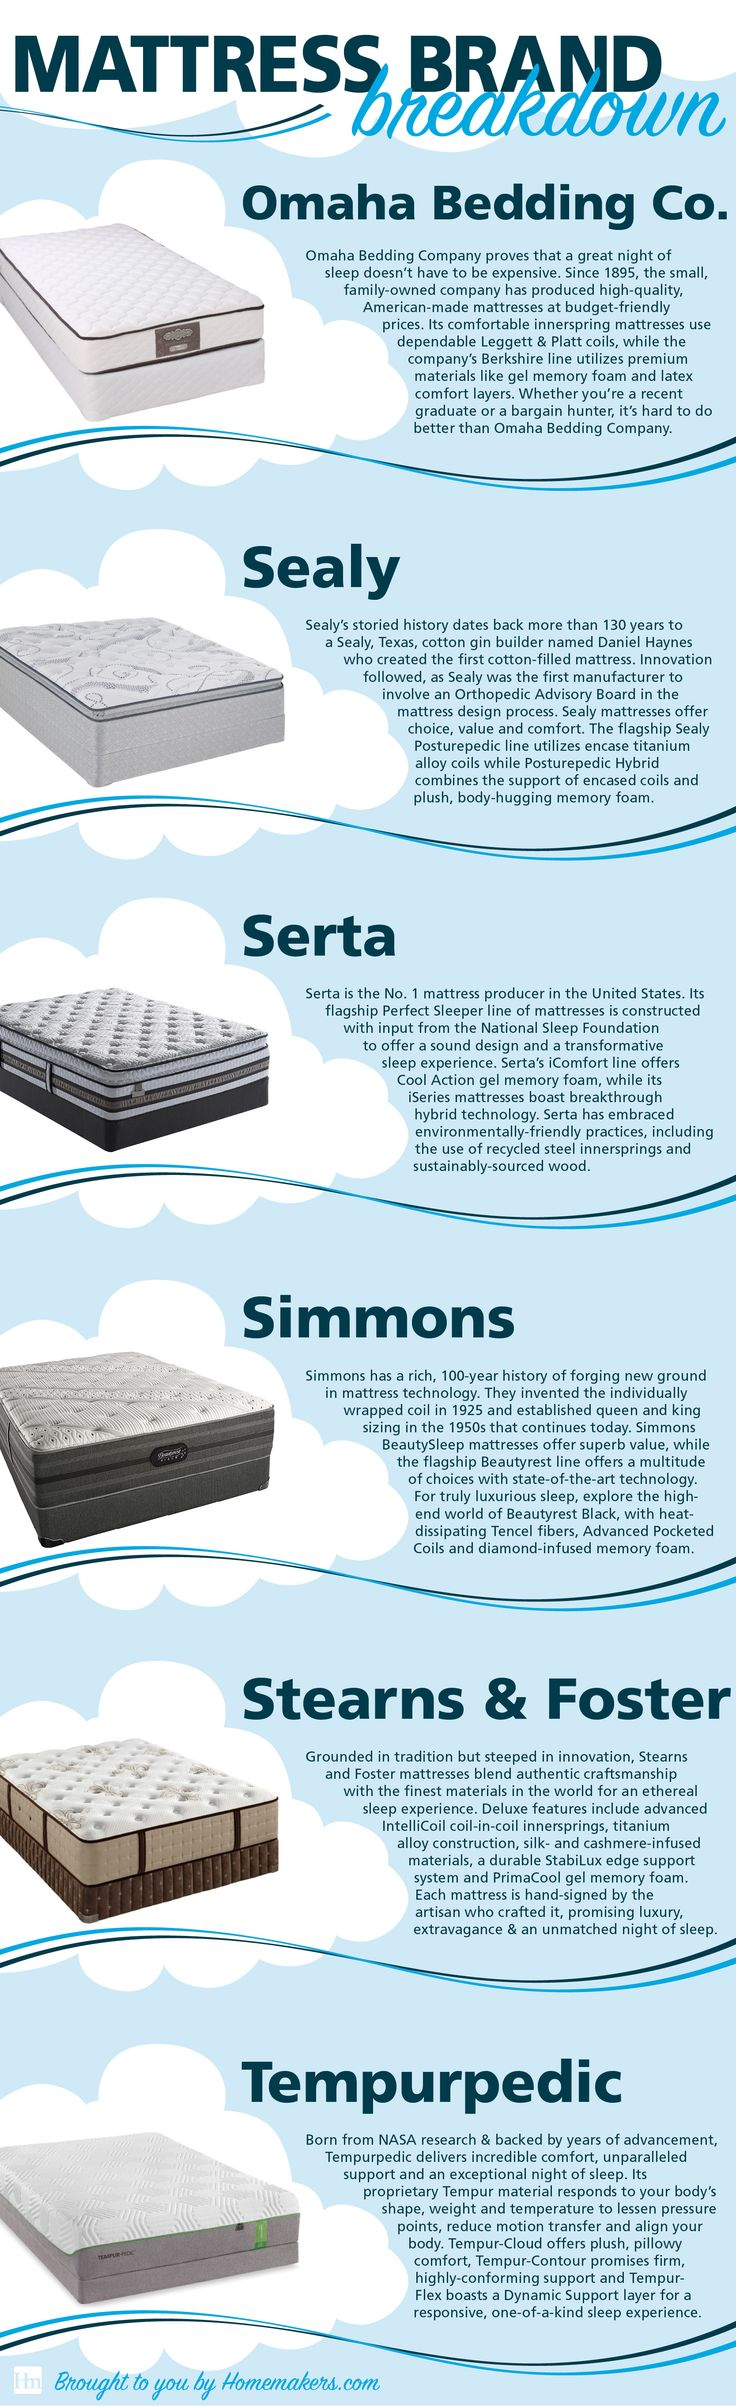 mattress things to consider when buying a new mattress mattress buying guide best price quality memory foam - Mattress Buying Guide